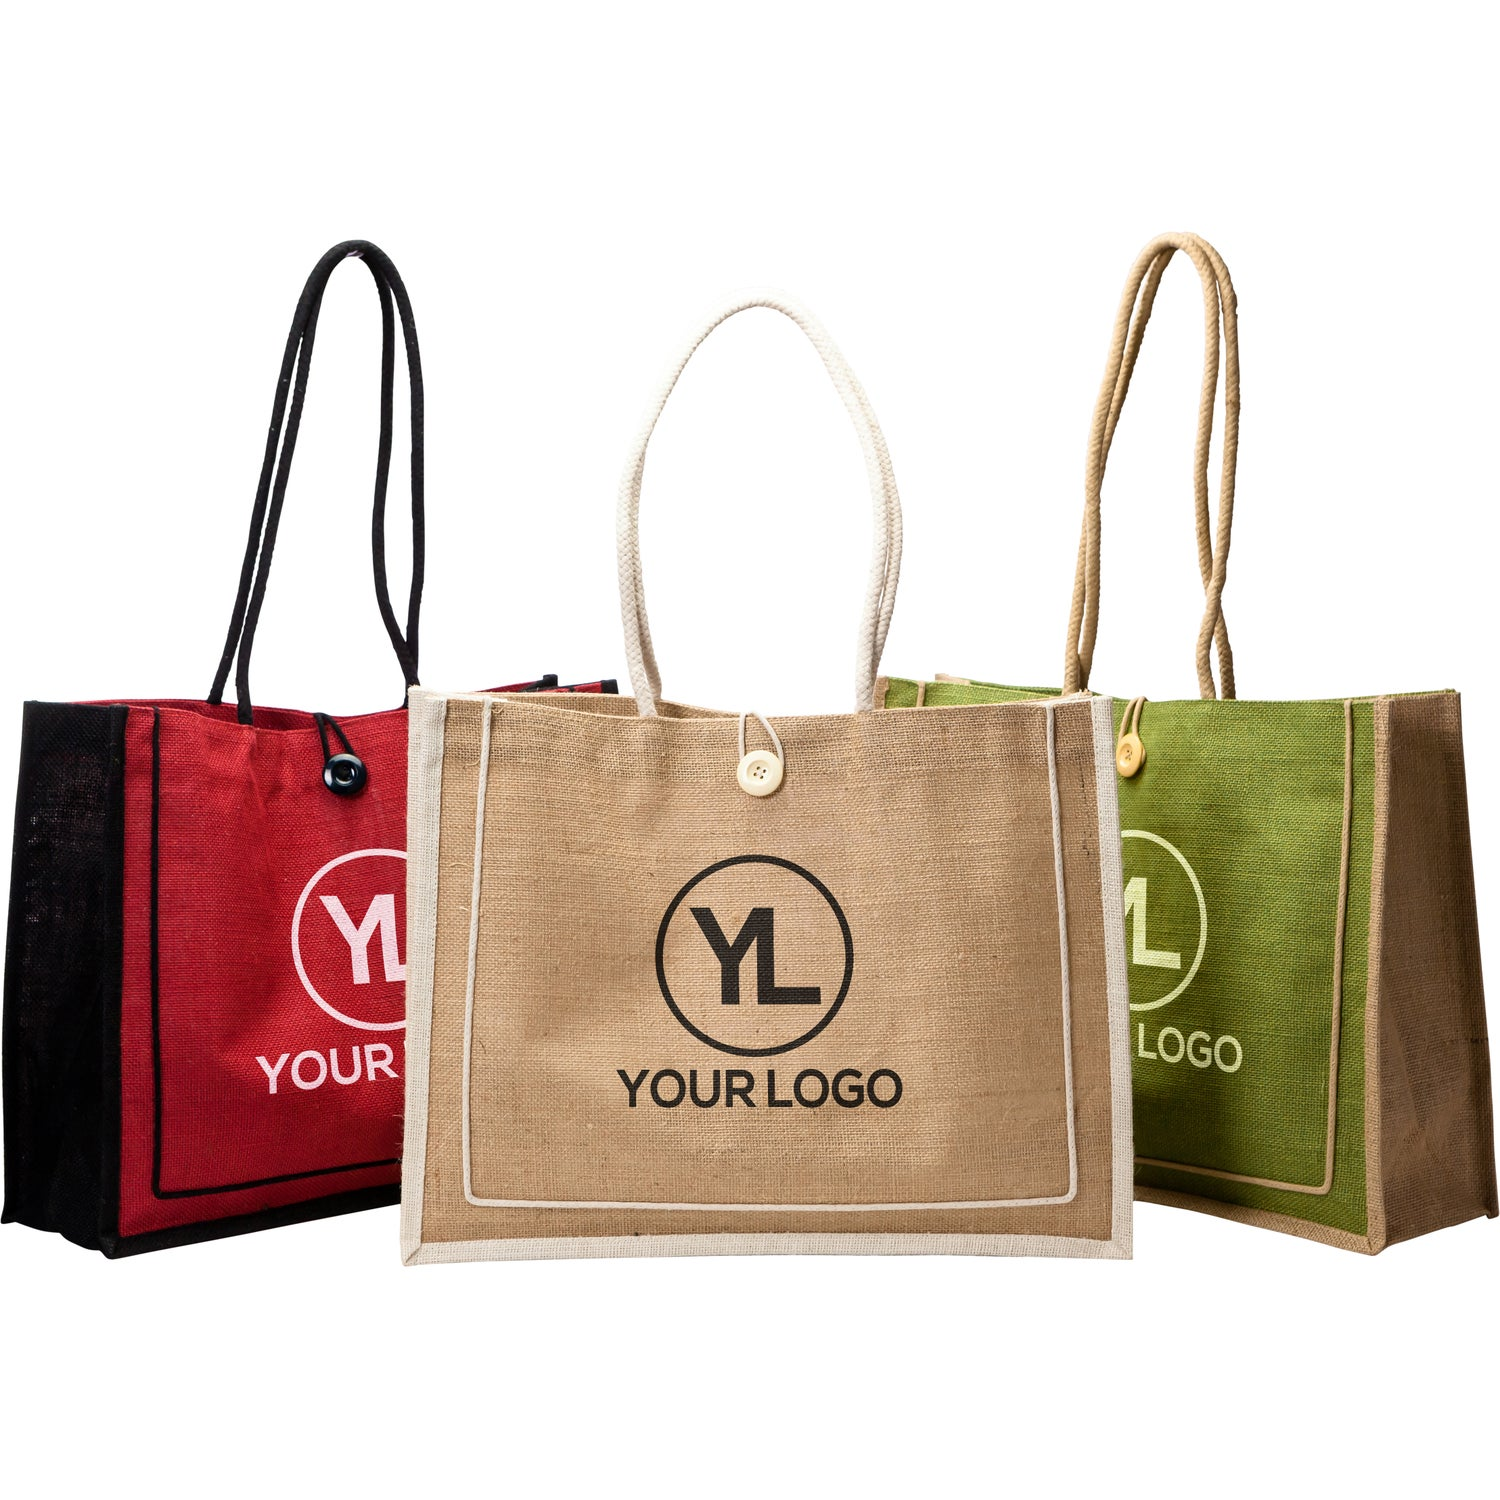 86f7b8a1c1d Promotional Milan Jute Totes with Custom Logo for  3.68 Ea.